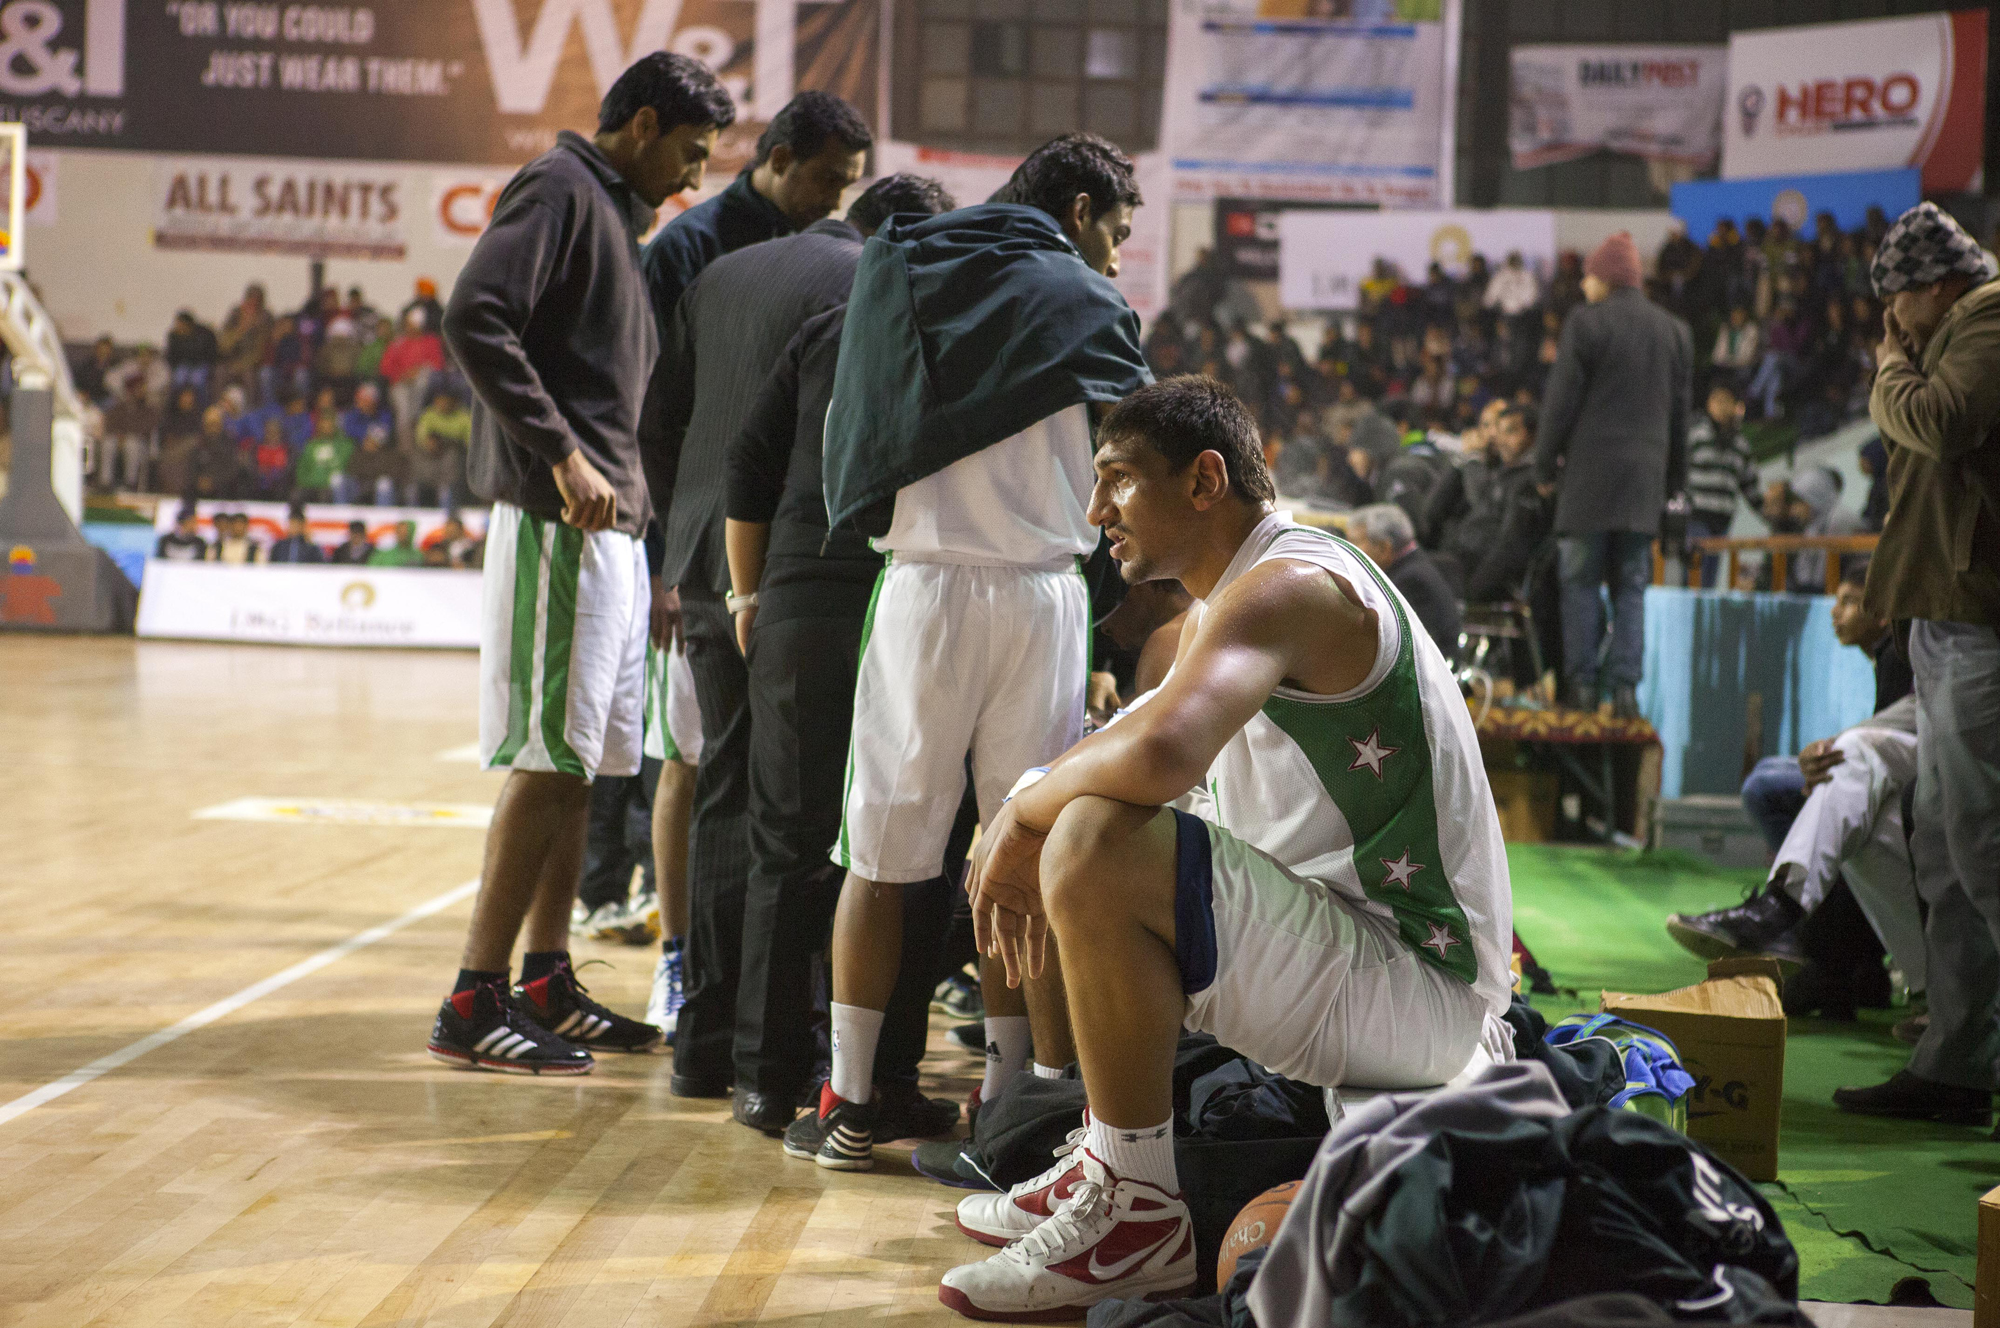 Satnam Singh Bhamara. Punjab team bench, 63rd Senior National Basketball Championship, Ludhiana, 2013. Satnam, India's 7ft 2in future hope for the NBA had come to play for the Punjab team from America where he was on scholarship at the IMG Academy in Florida.